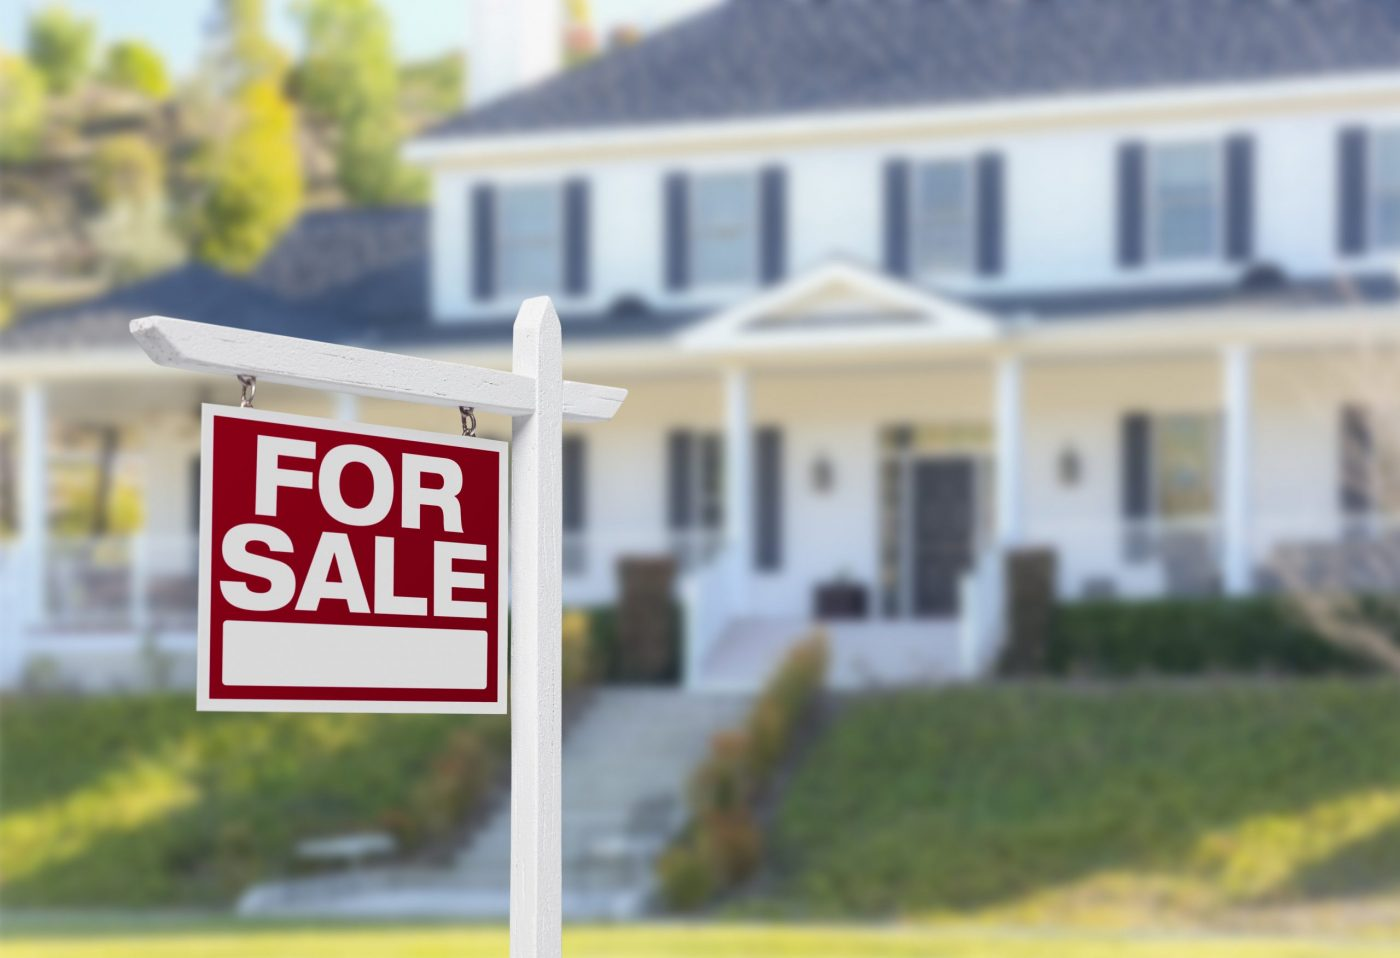 Real Estate For Sale Signs: A Content Marketing Opportunity